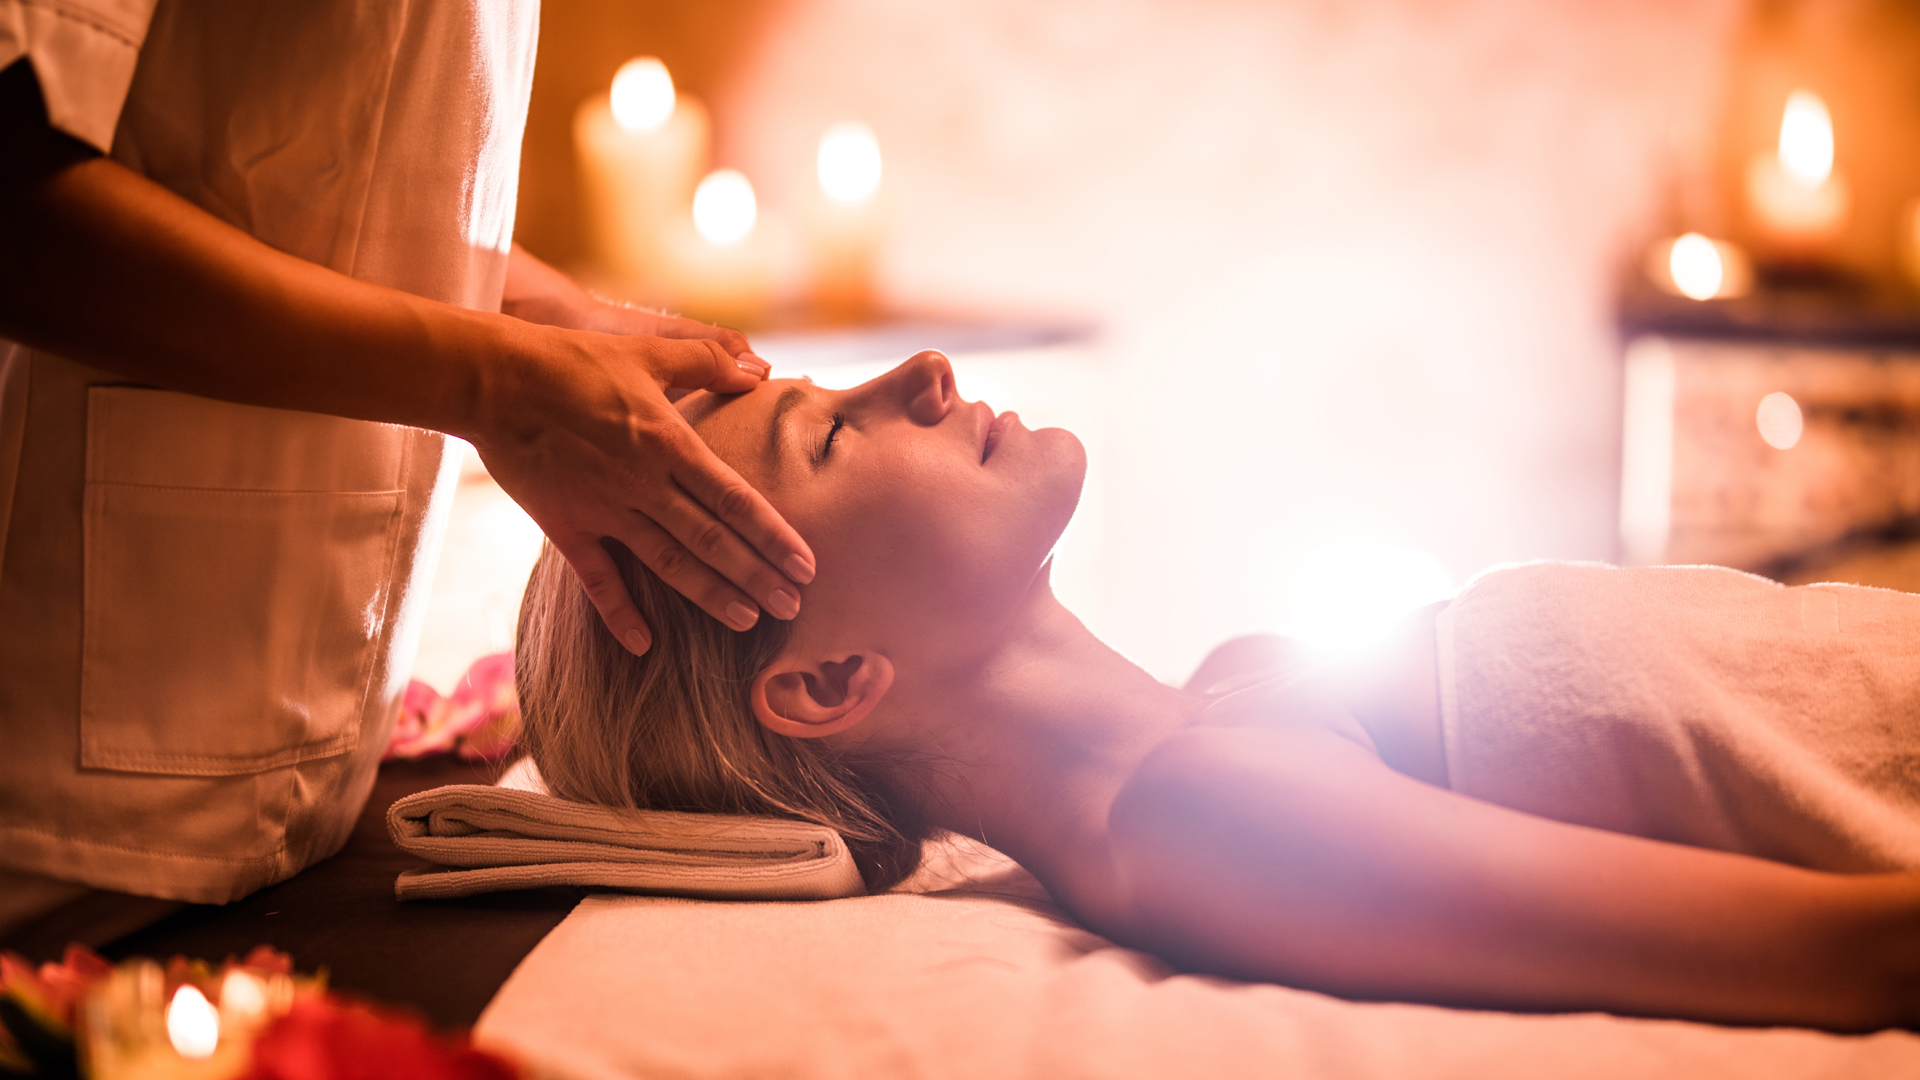 young blonde mom woman laying on massage table in towel, reiki master performing reiki